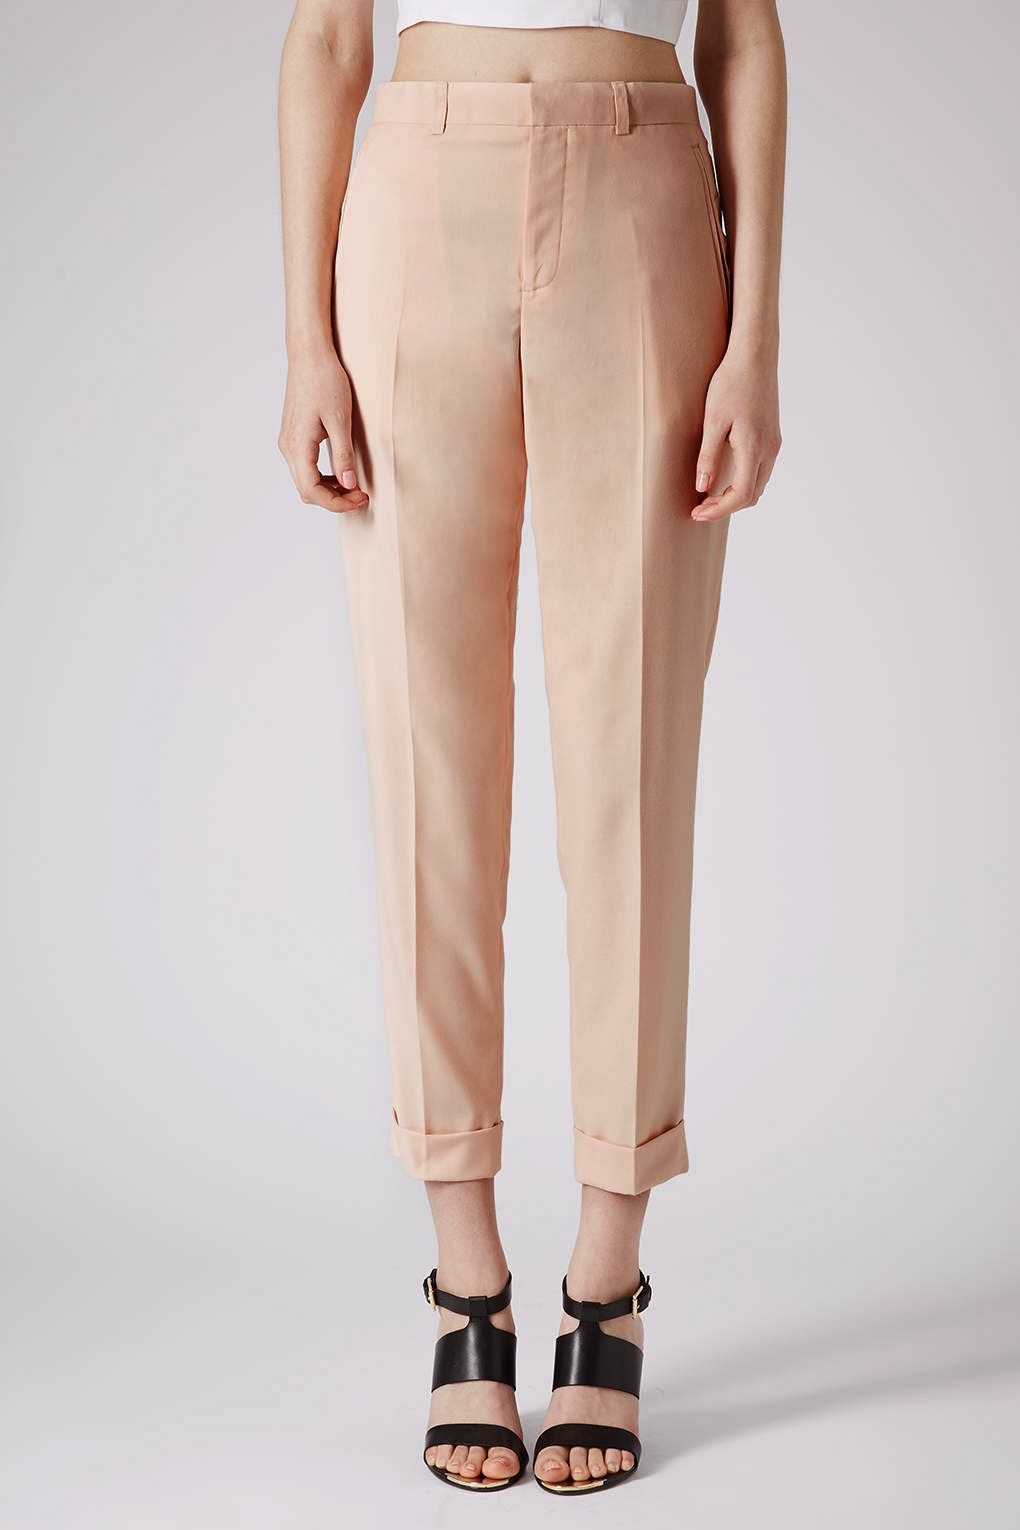 topshop peach trousers